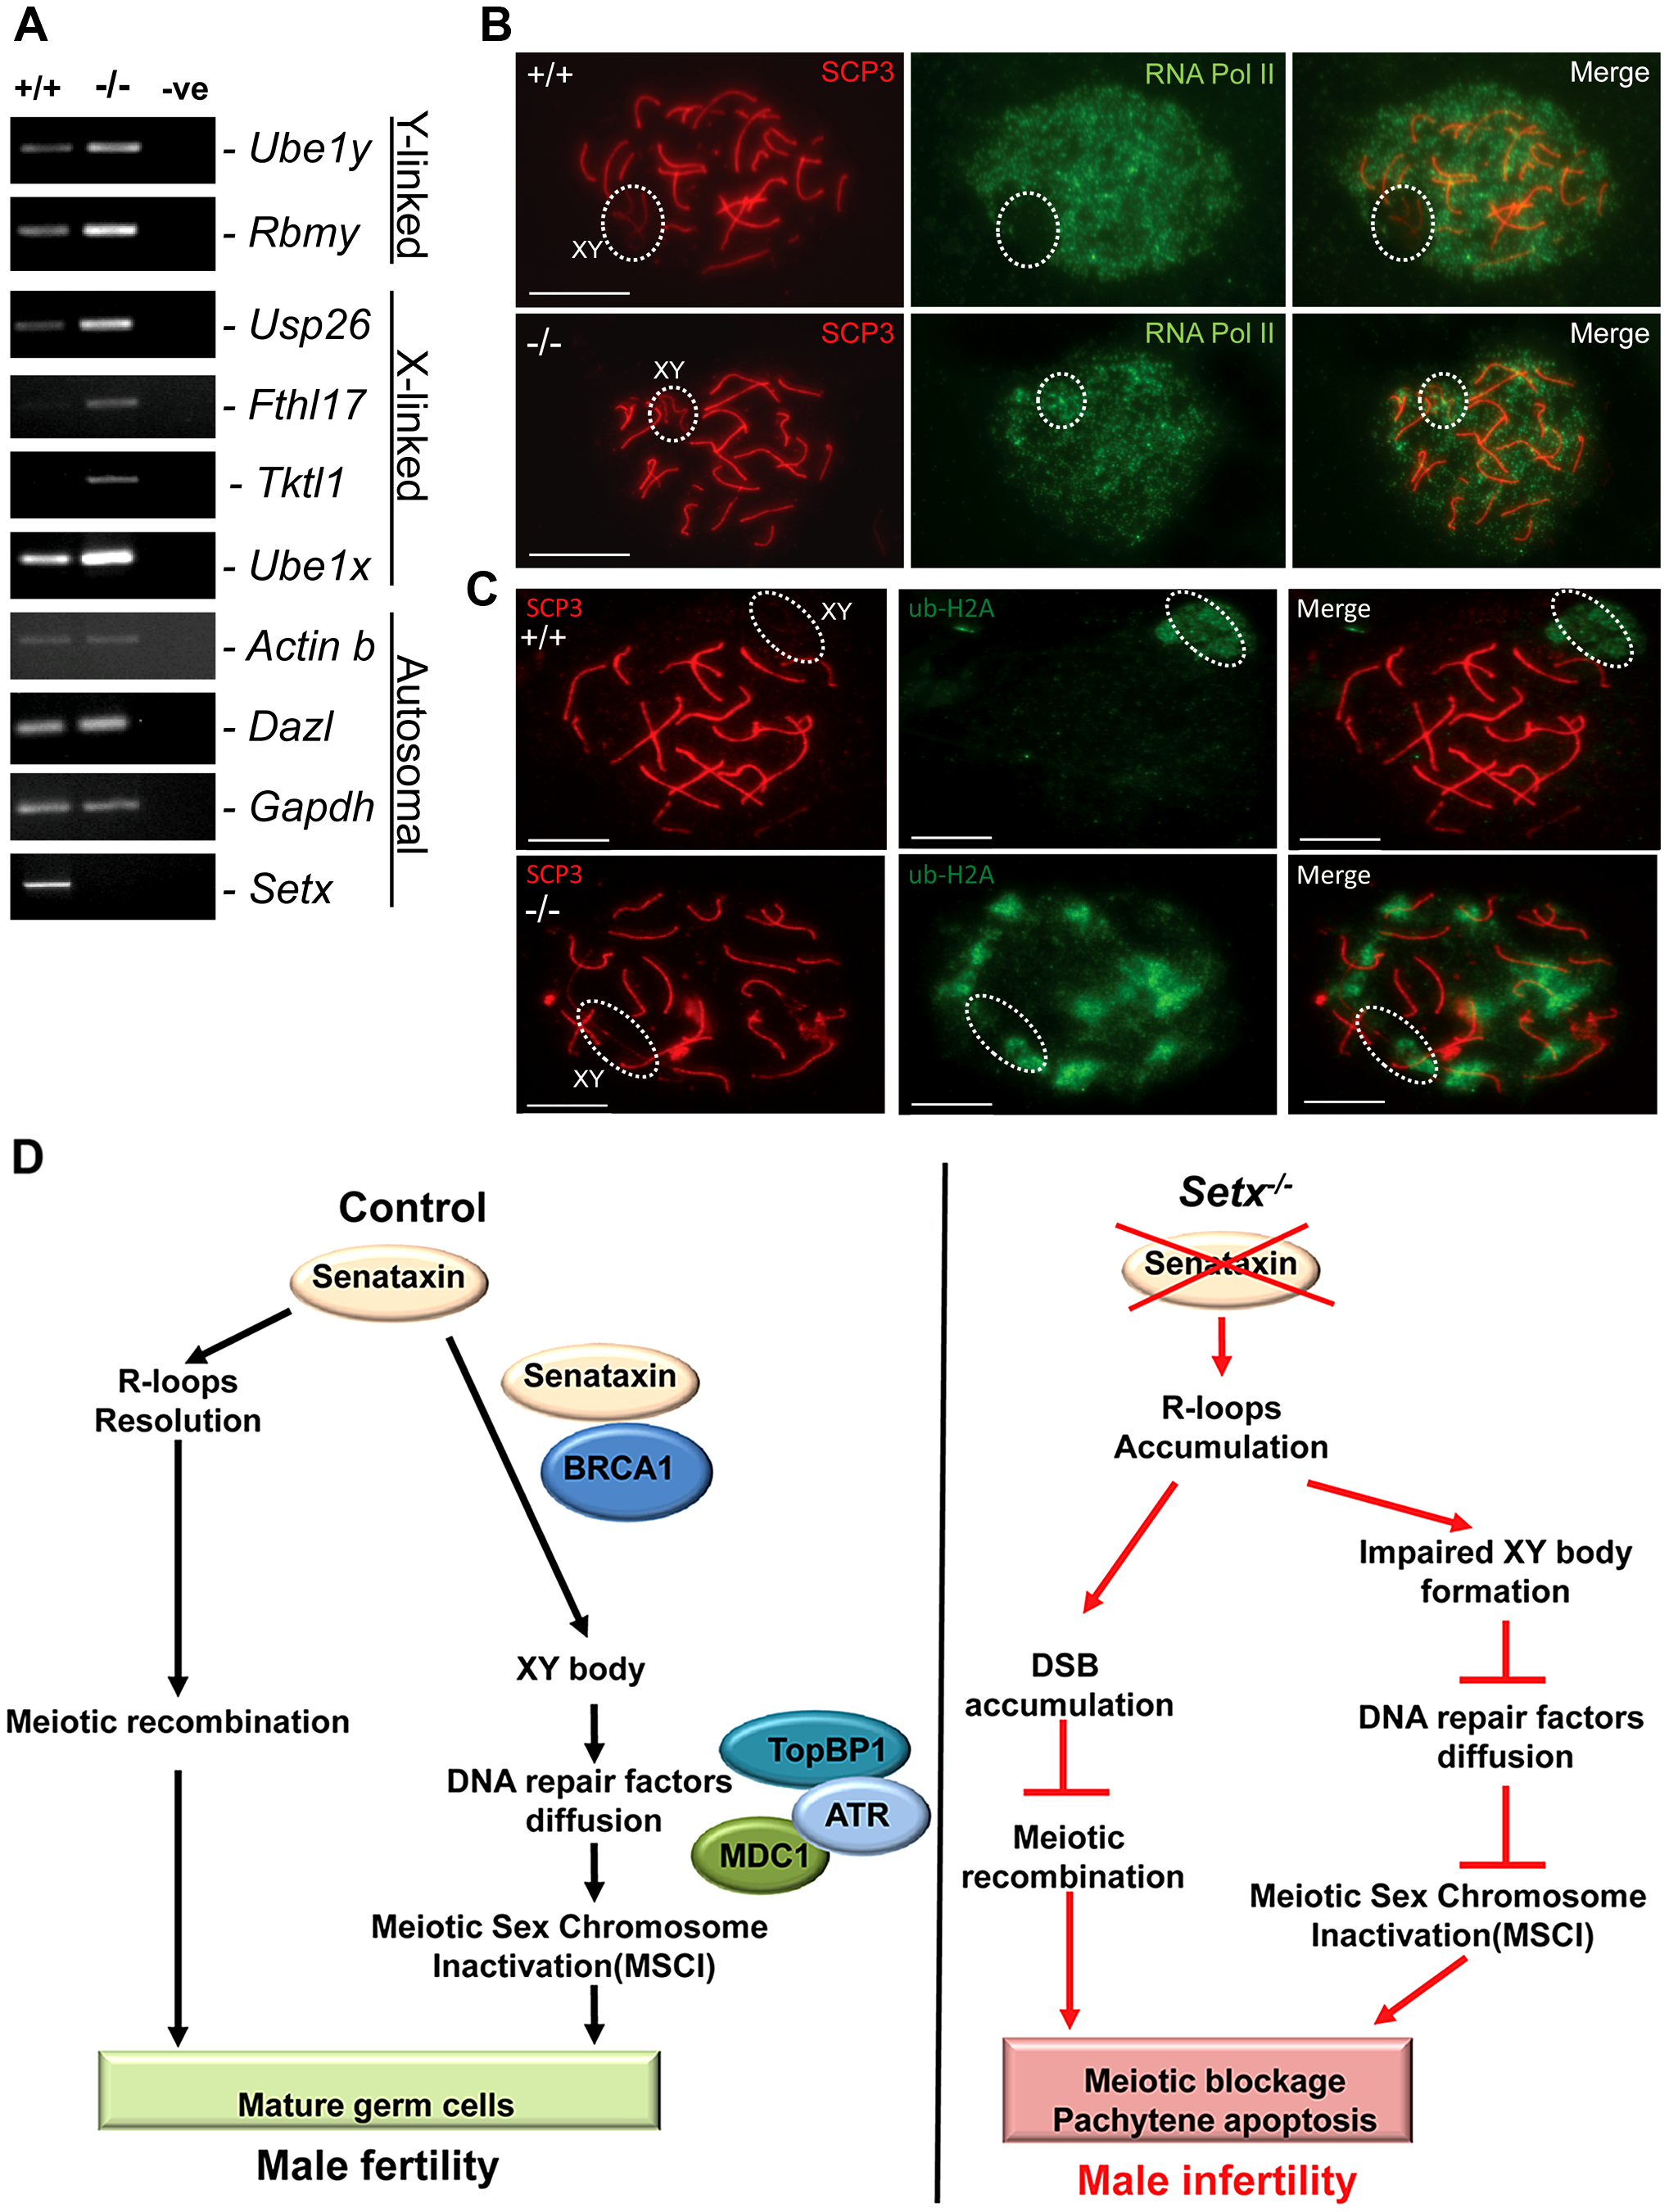 Aberrant meiotic sex chromosome inactivation in <i>Setx<sup>−/−</sup></i> mice.